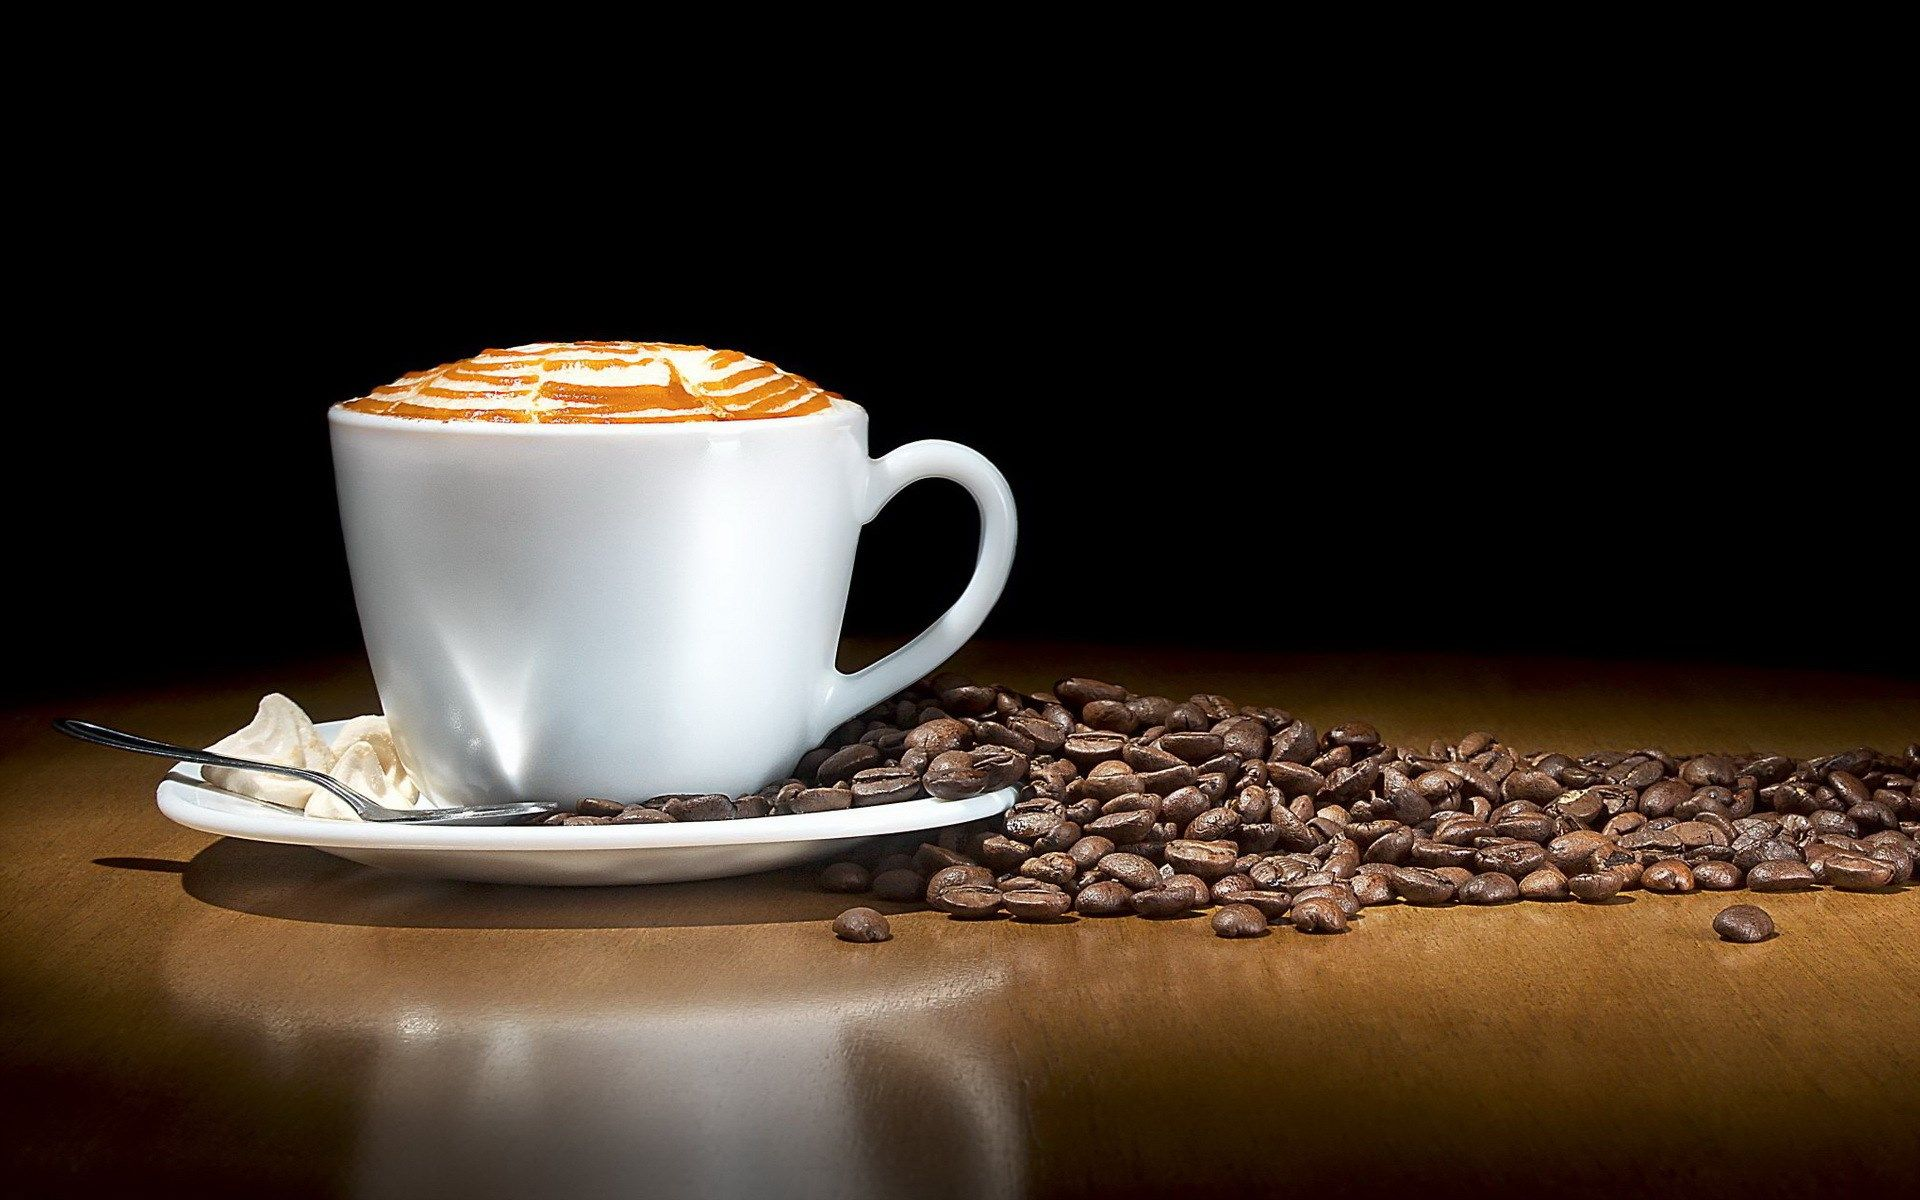 photos download coffee wallpapers hd Good morning coffee